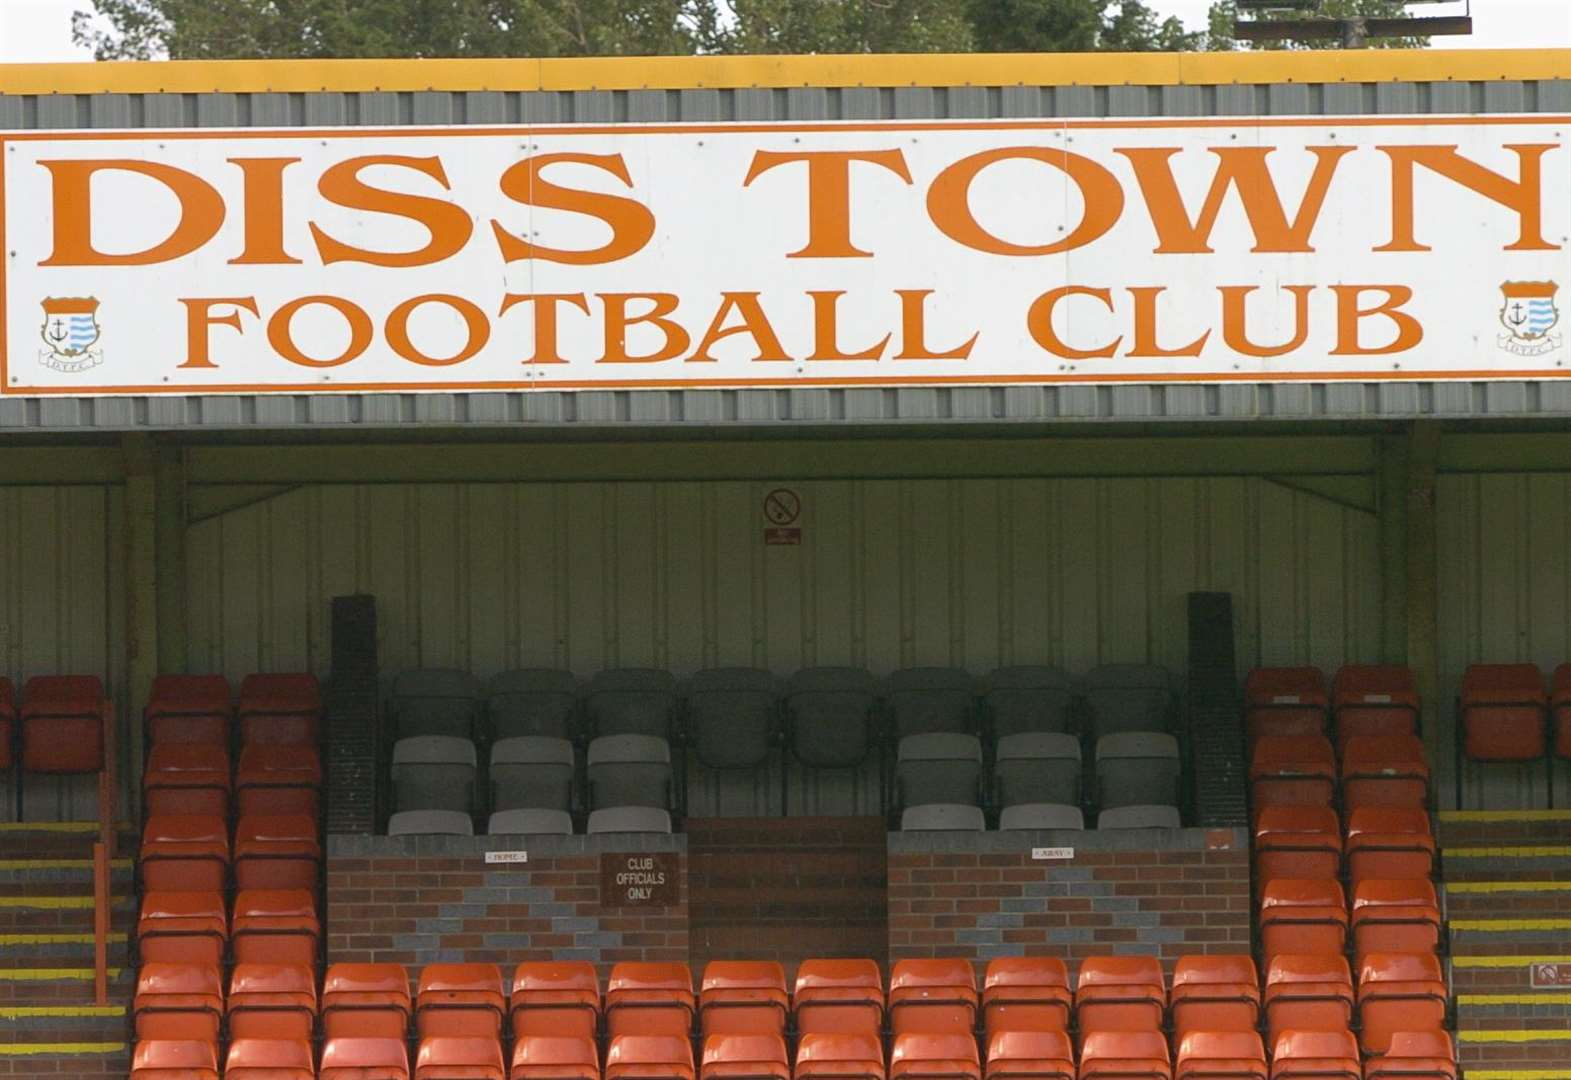 Diss to bring back reserve side for 2019/20